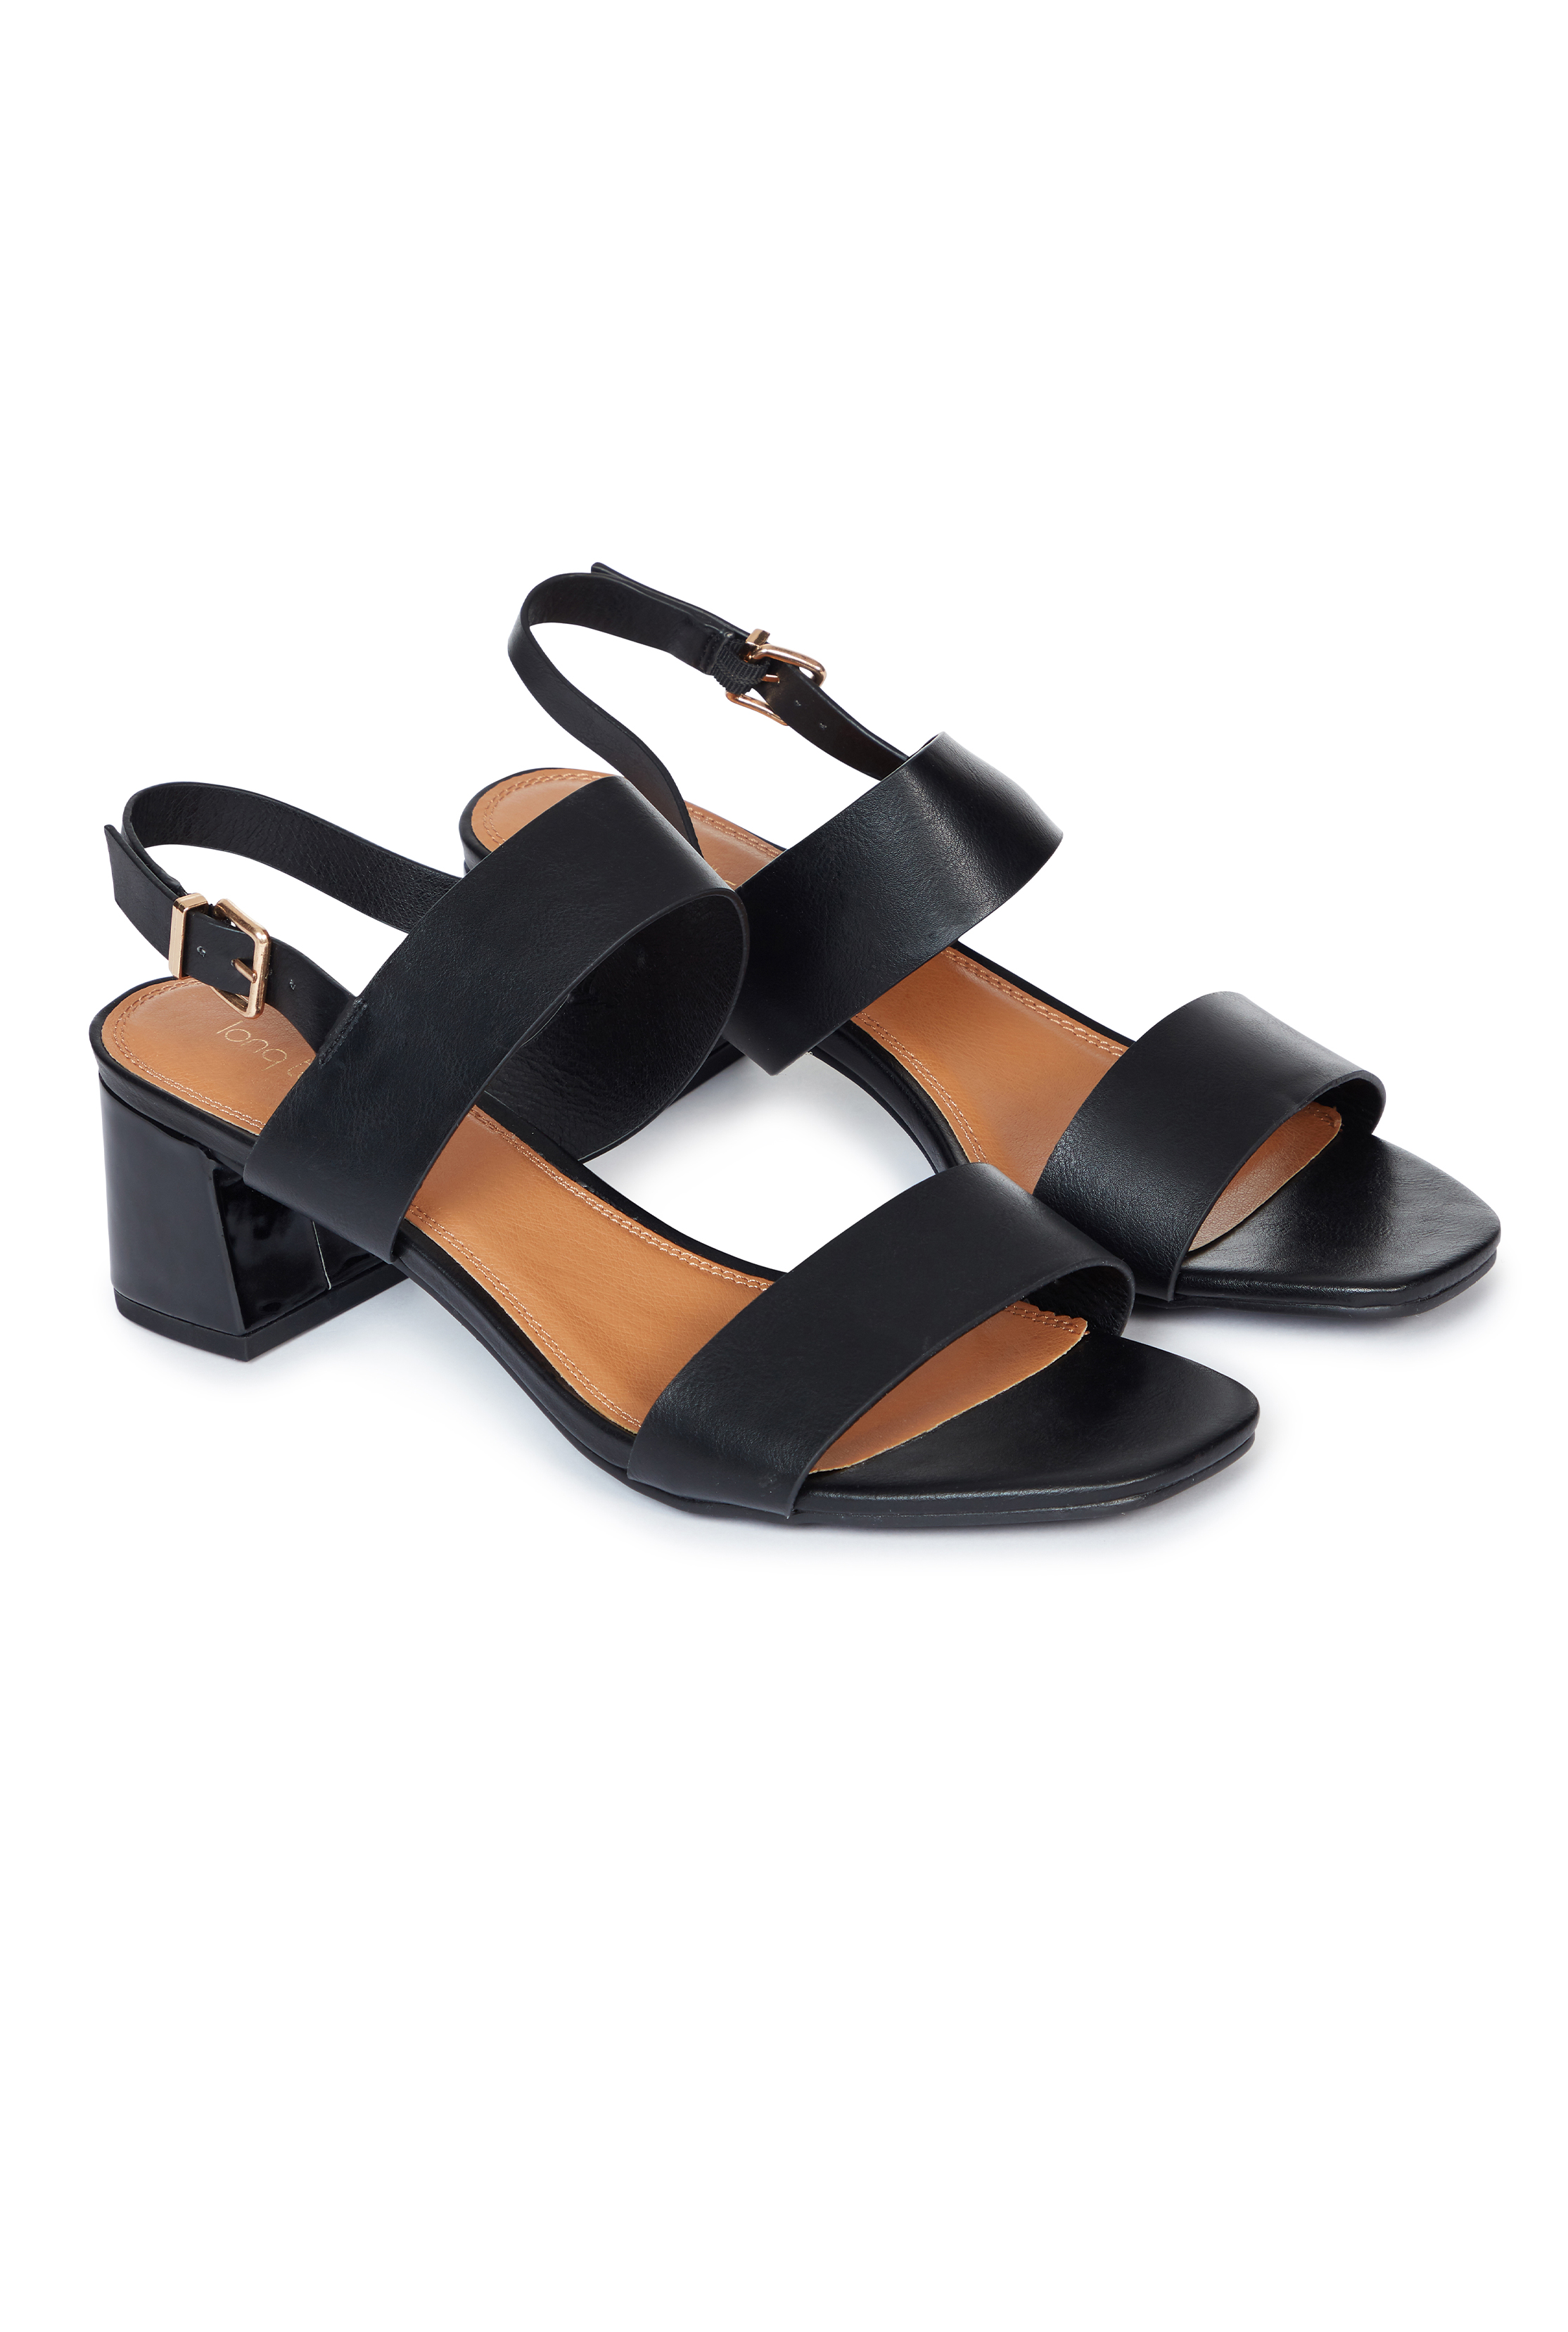 LTS Skyla Two Part Block Heel Sandal